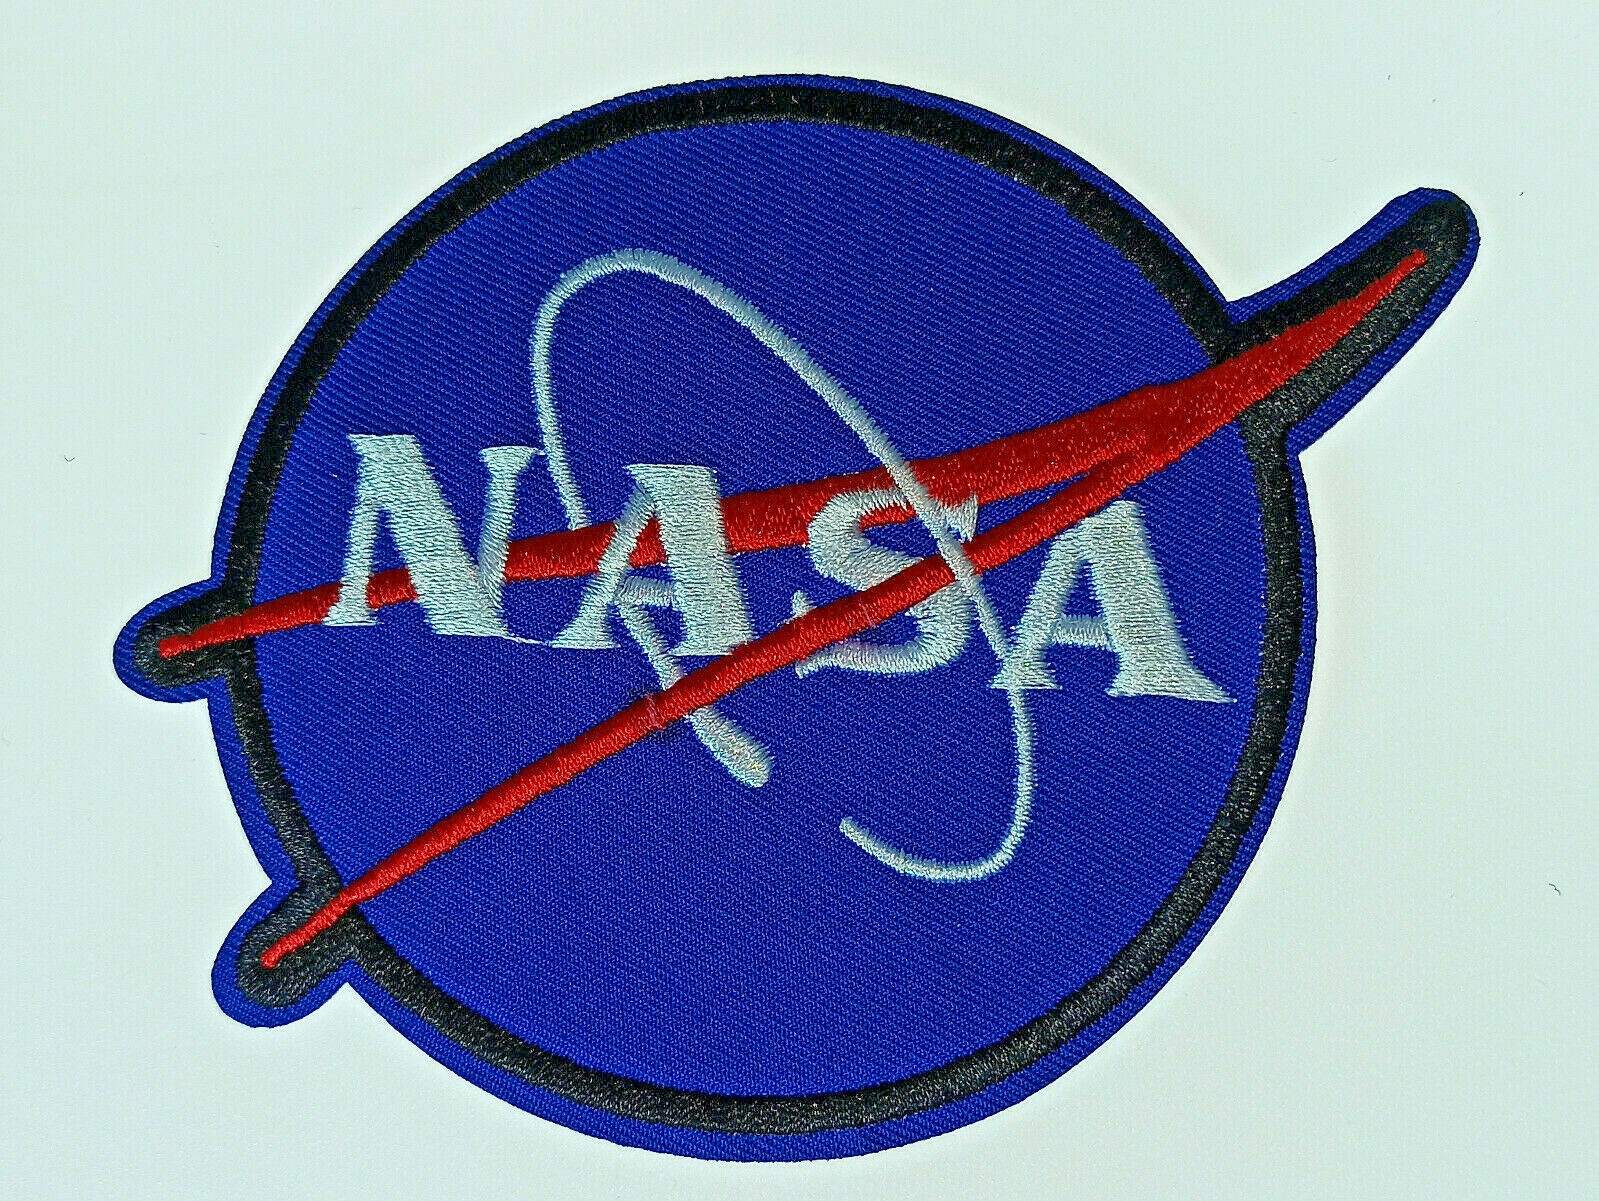 Blue Spaceship Iron On Embroidery Applique Patch Sew Iron Badge